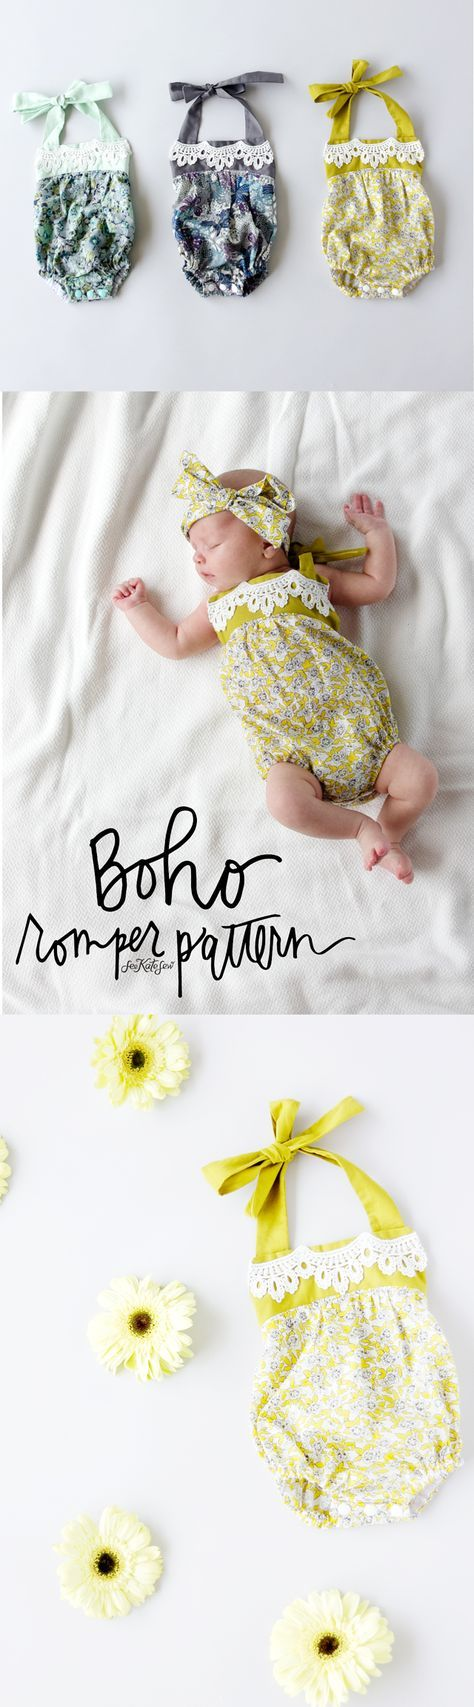 This post is sponsored by Fabric.com! I'm thrilled to share this pattern with you, I had a blast designing it with fabric and trim from Fabric.com! I was going for a vintage-inspired boho feel to this little baby romper and I'm excited about how it turned out! I think it's pretty cute on my little …